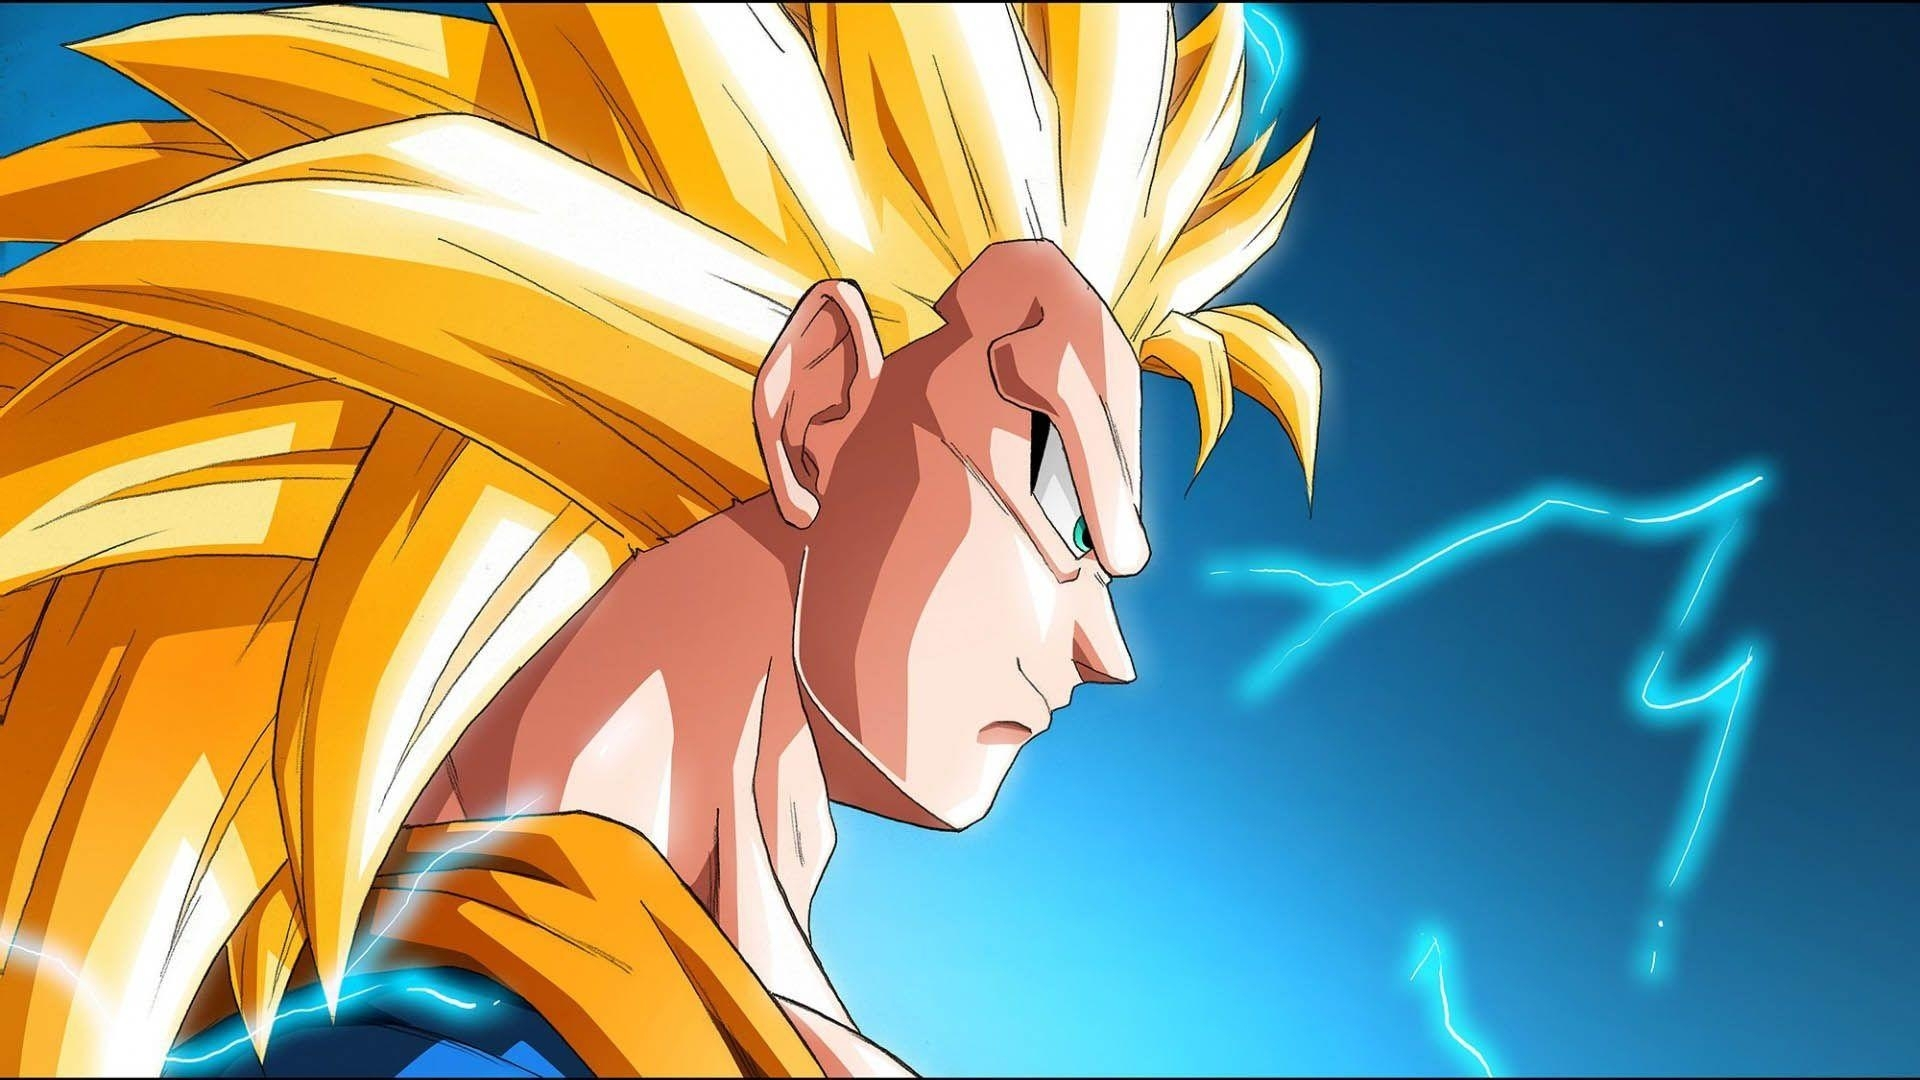 goku super saiyan 3 wallpapers - wallpaper cave